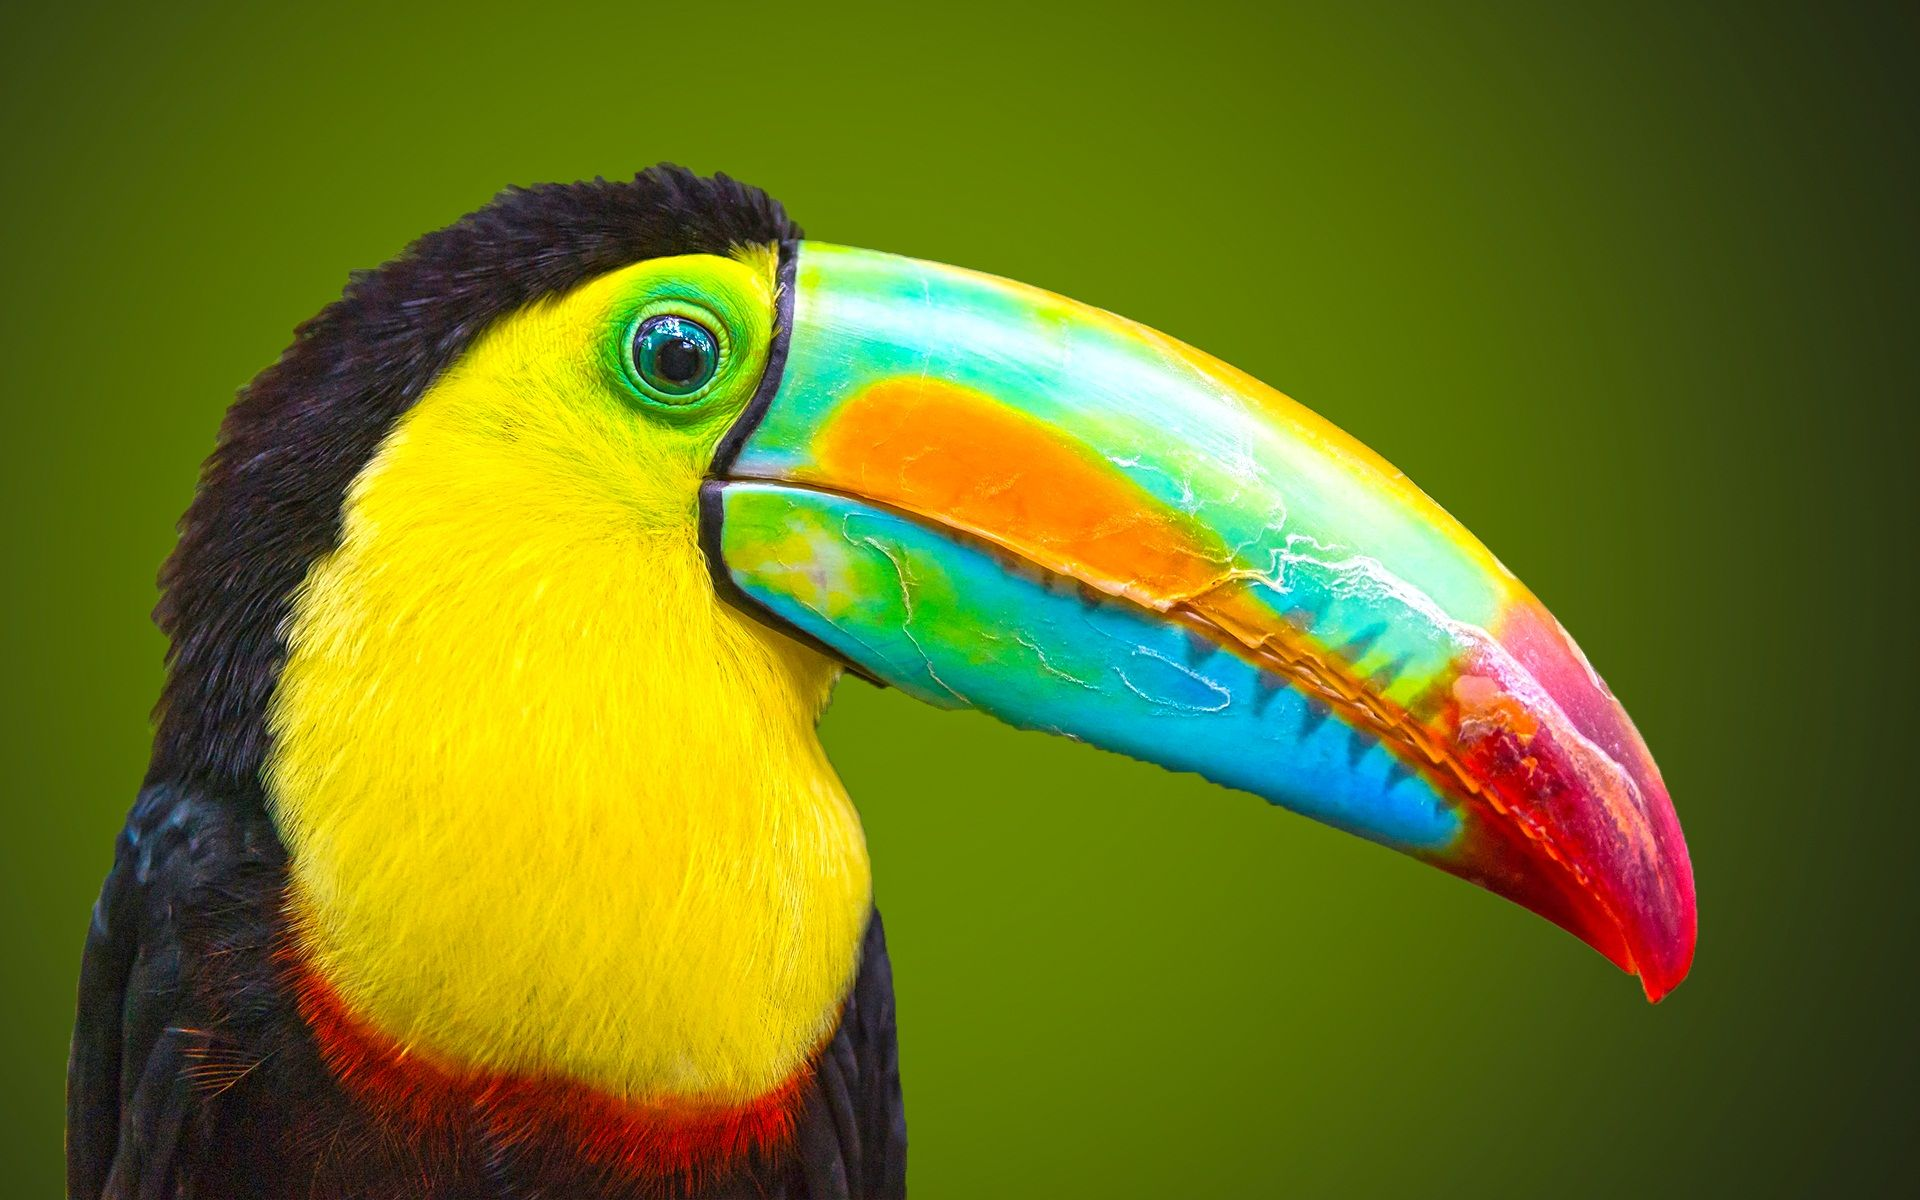 Big beak beautiful bird wallpaper | Beautiful hd wallpaper